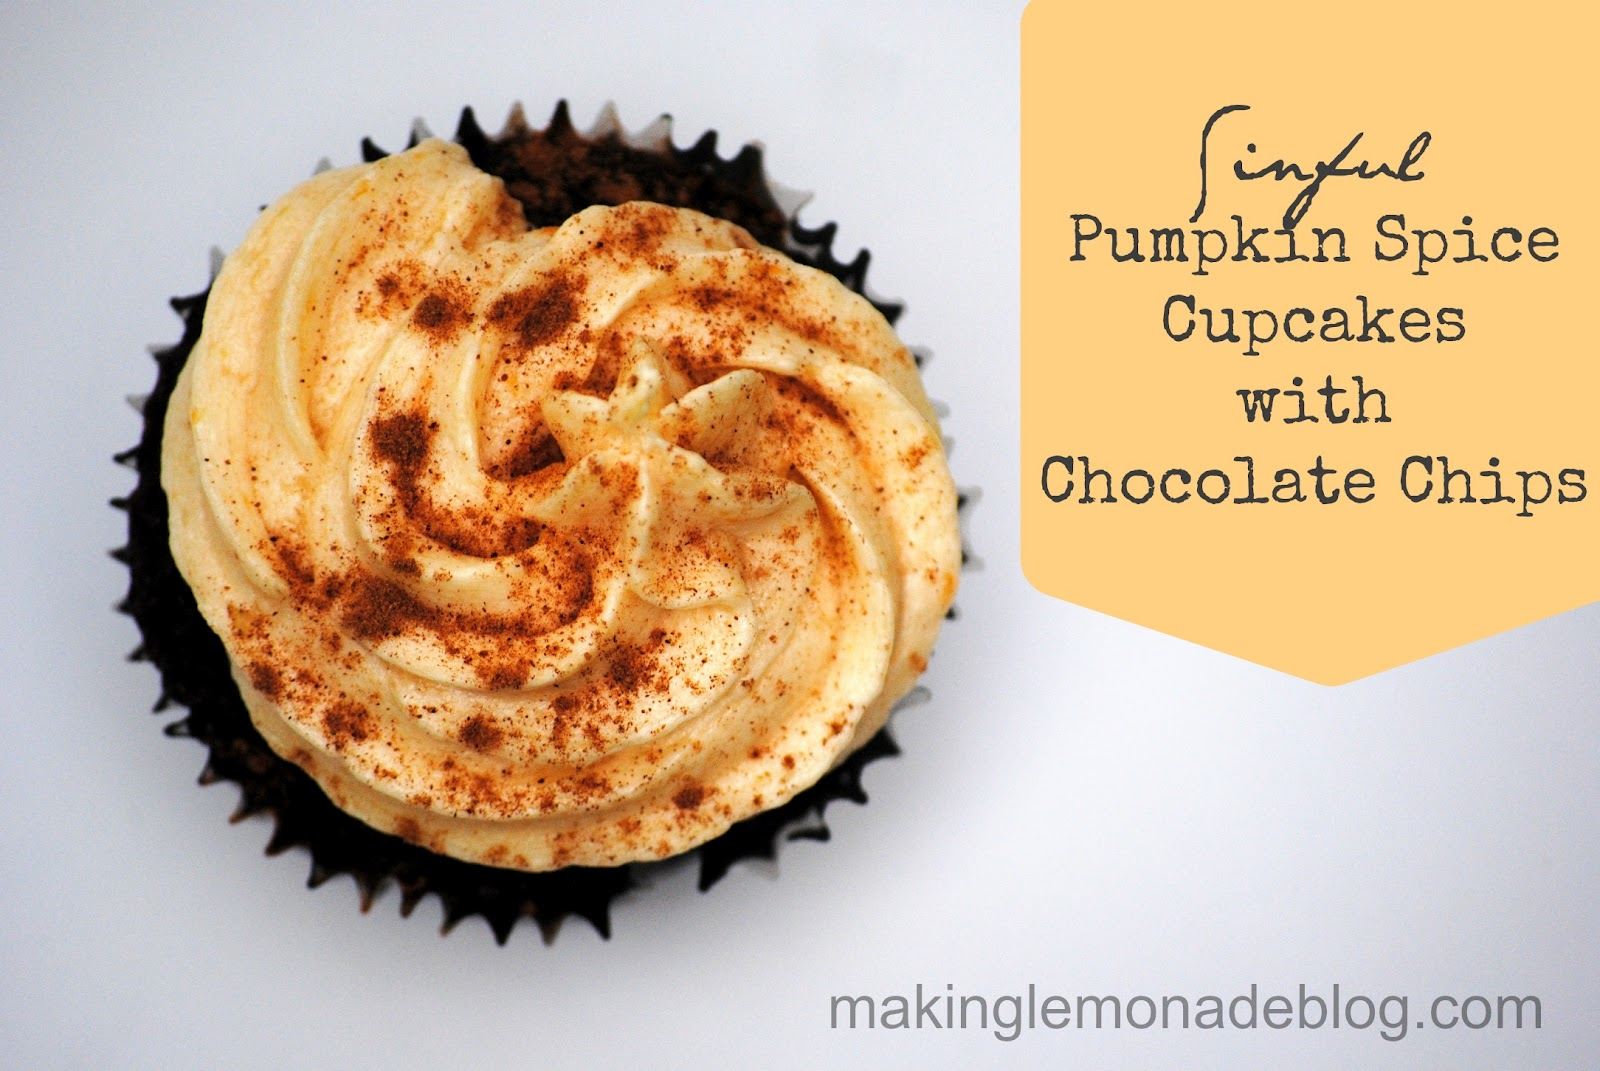 ... Pumpkin Spice Cupcakes with Chocolate Chips (easy chocolate cupcakes